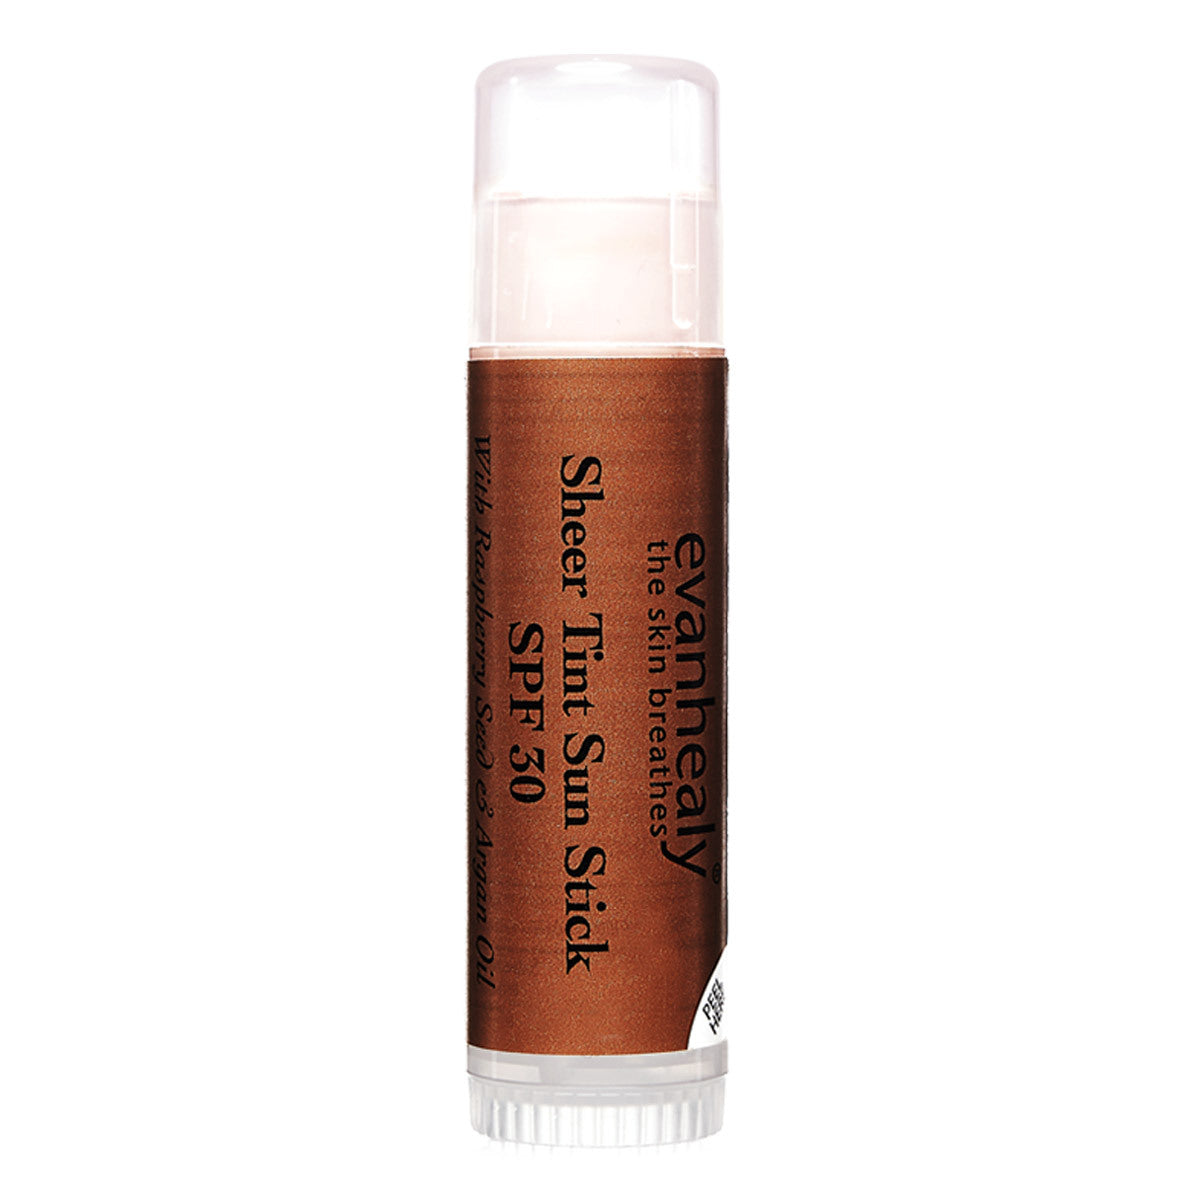 A brown tube of evanhealy sunscreen stick